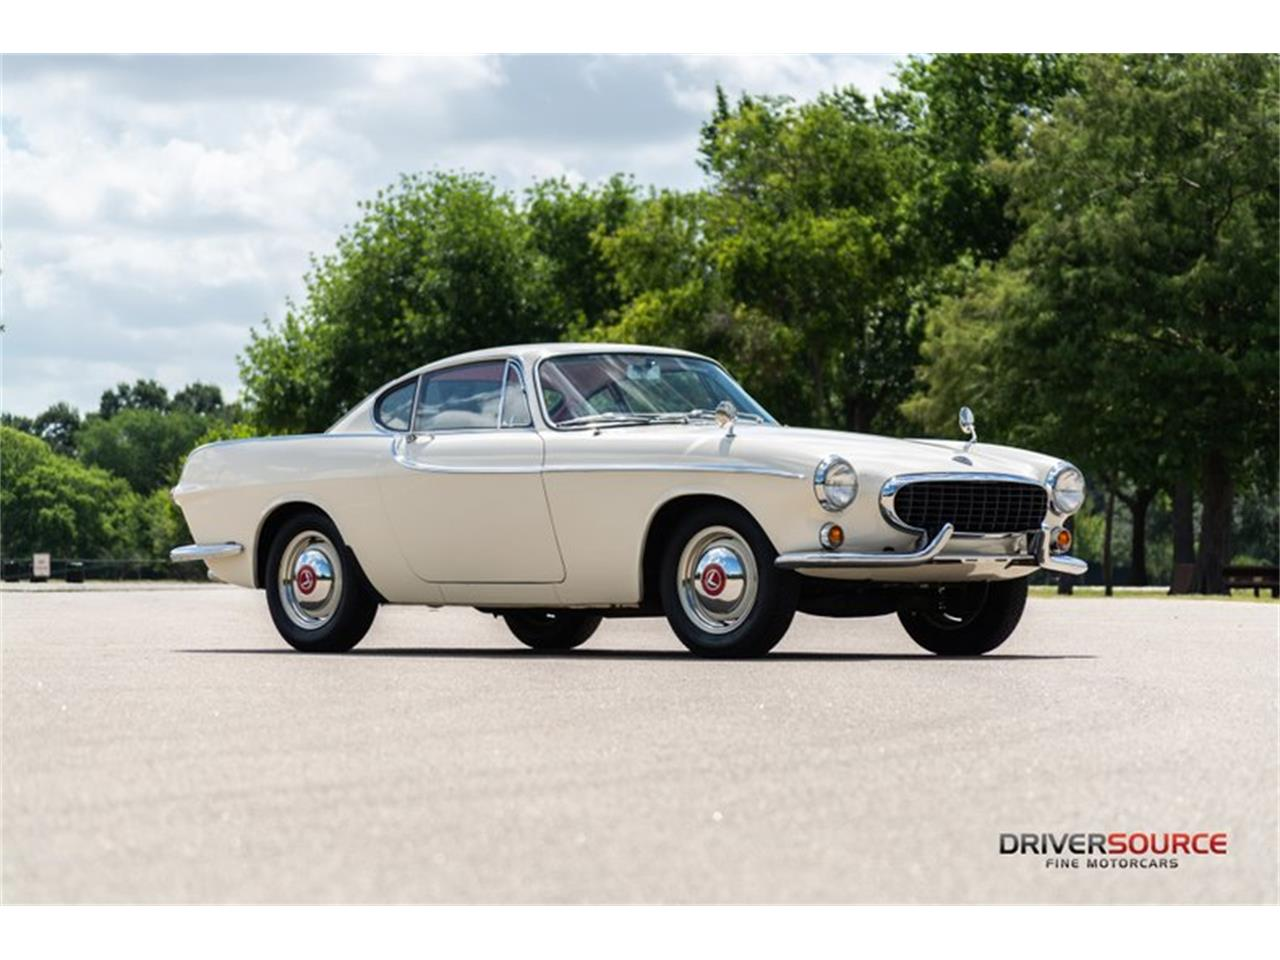 Large Picture of '64 P1800E Offered by Driversource - NNM3